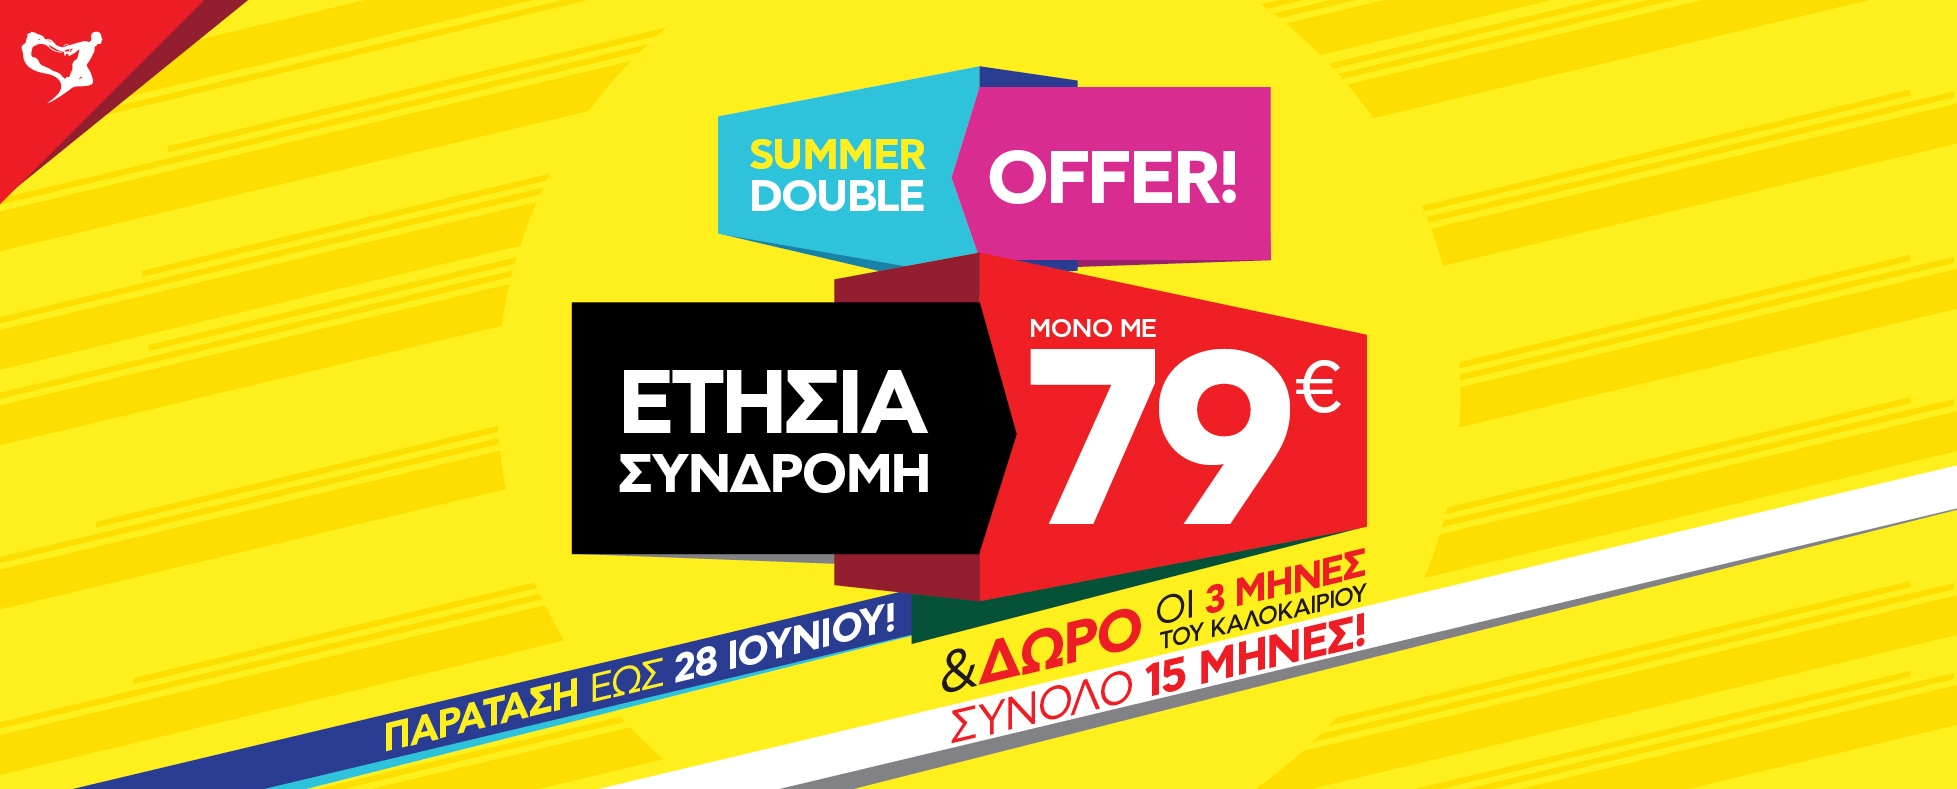 YAVA  SUMMER DOUBLE OFFER 79€